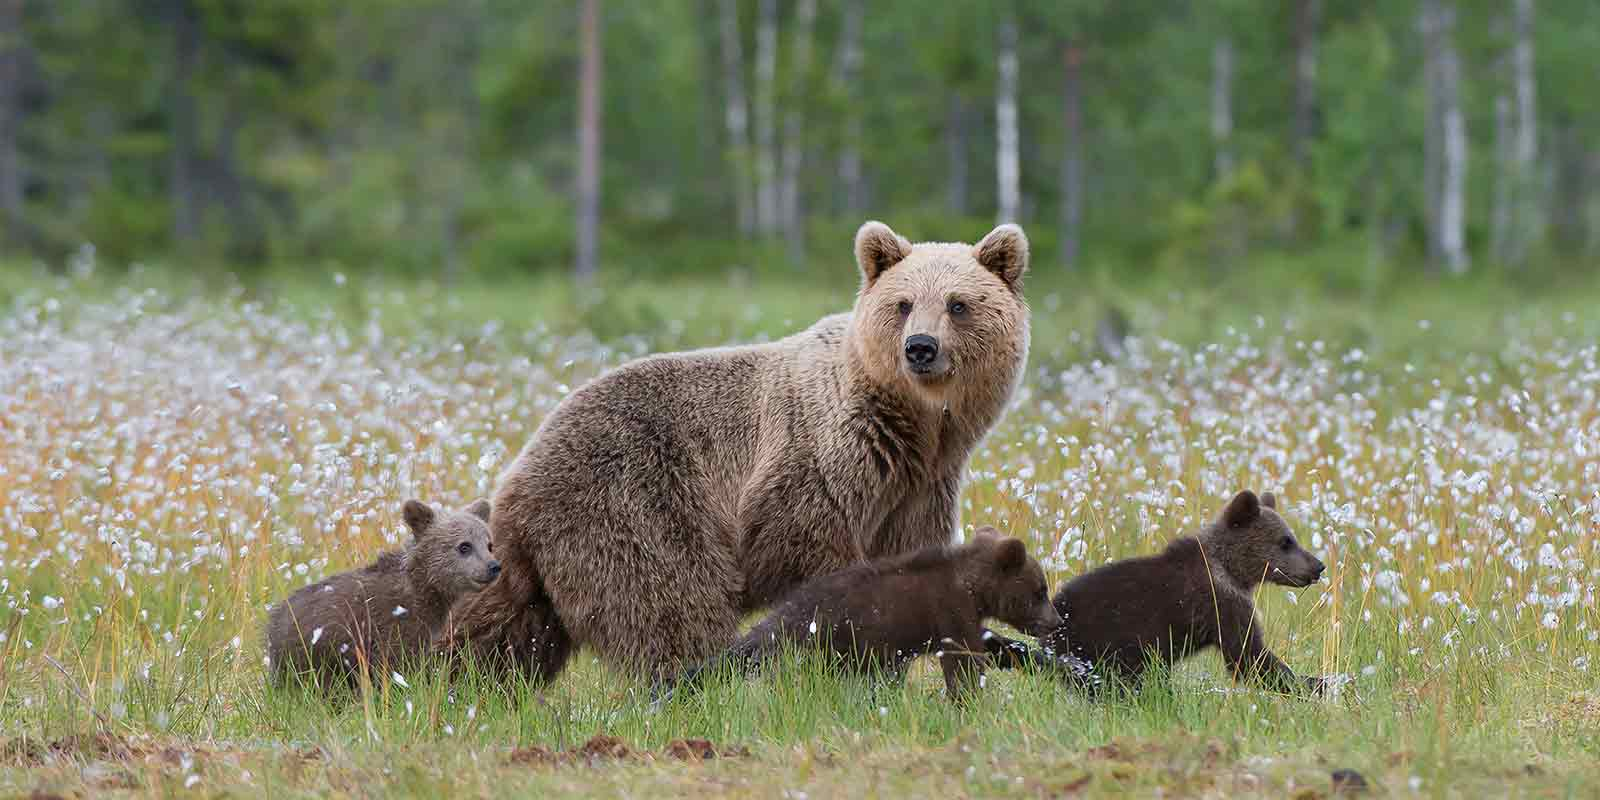 European brown bear and cubs walking through cotton grass in Finland forest